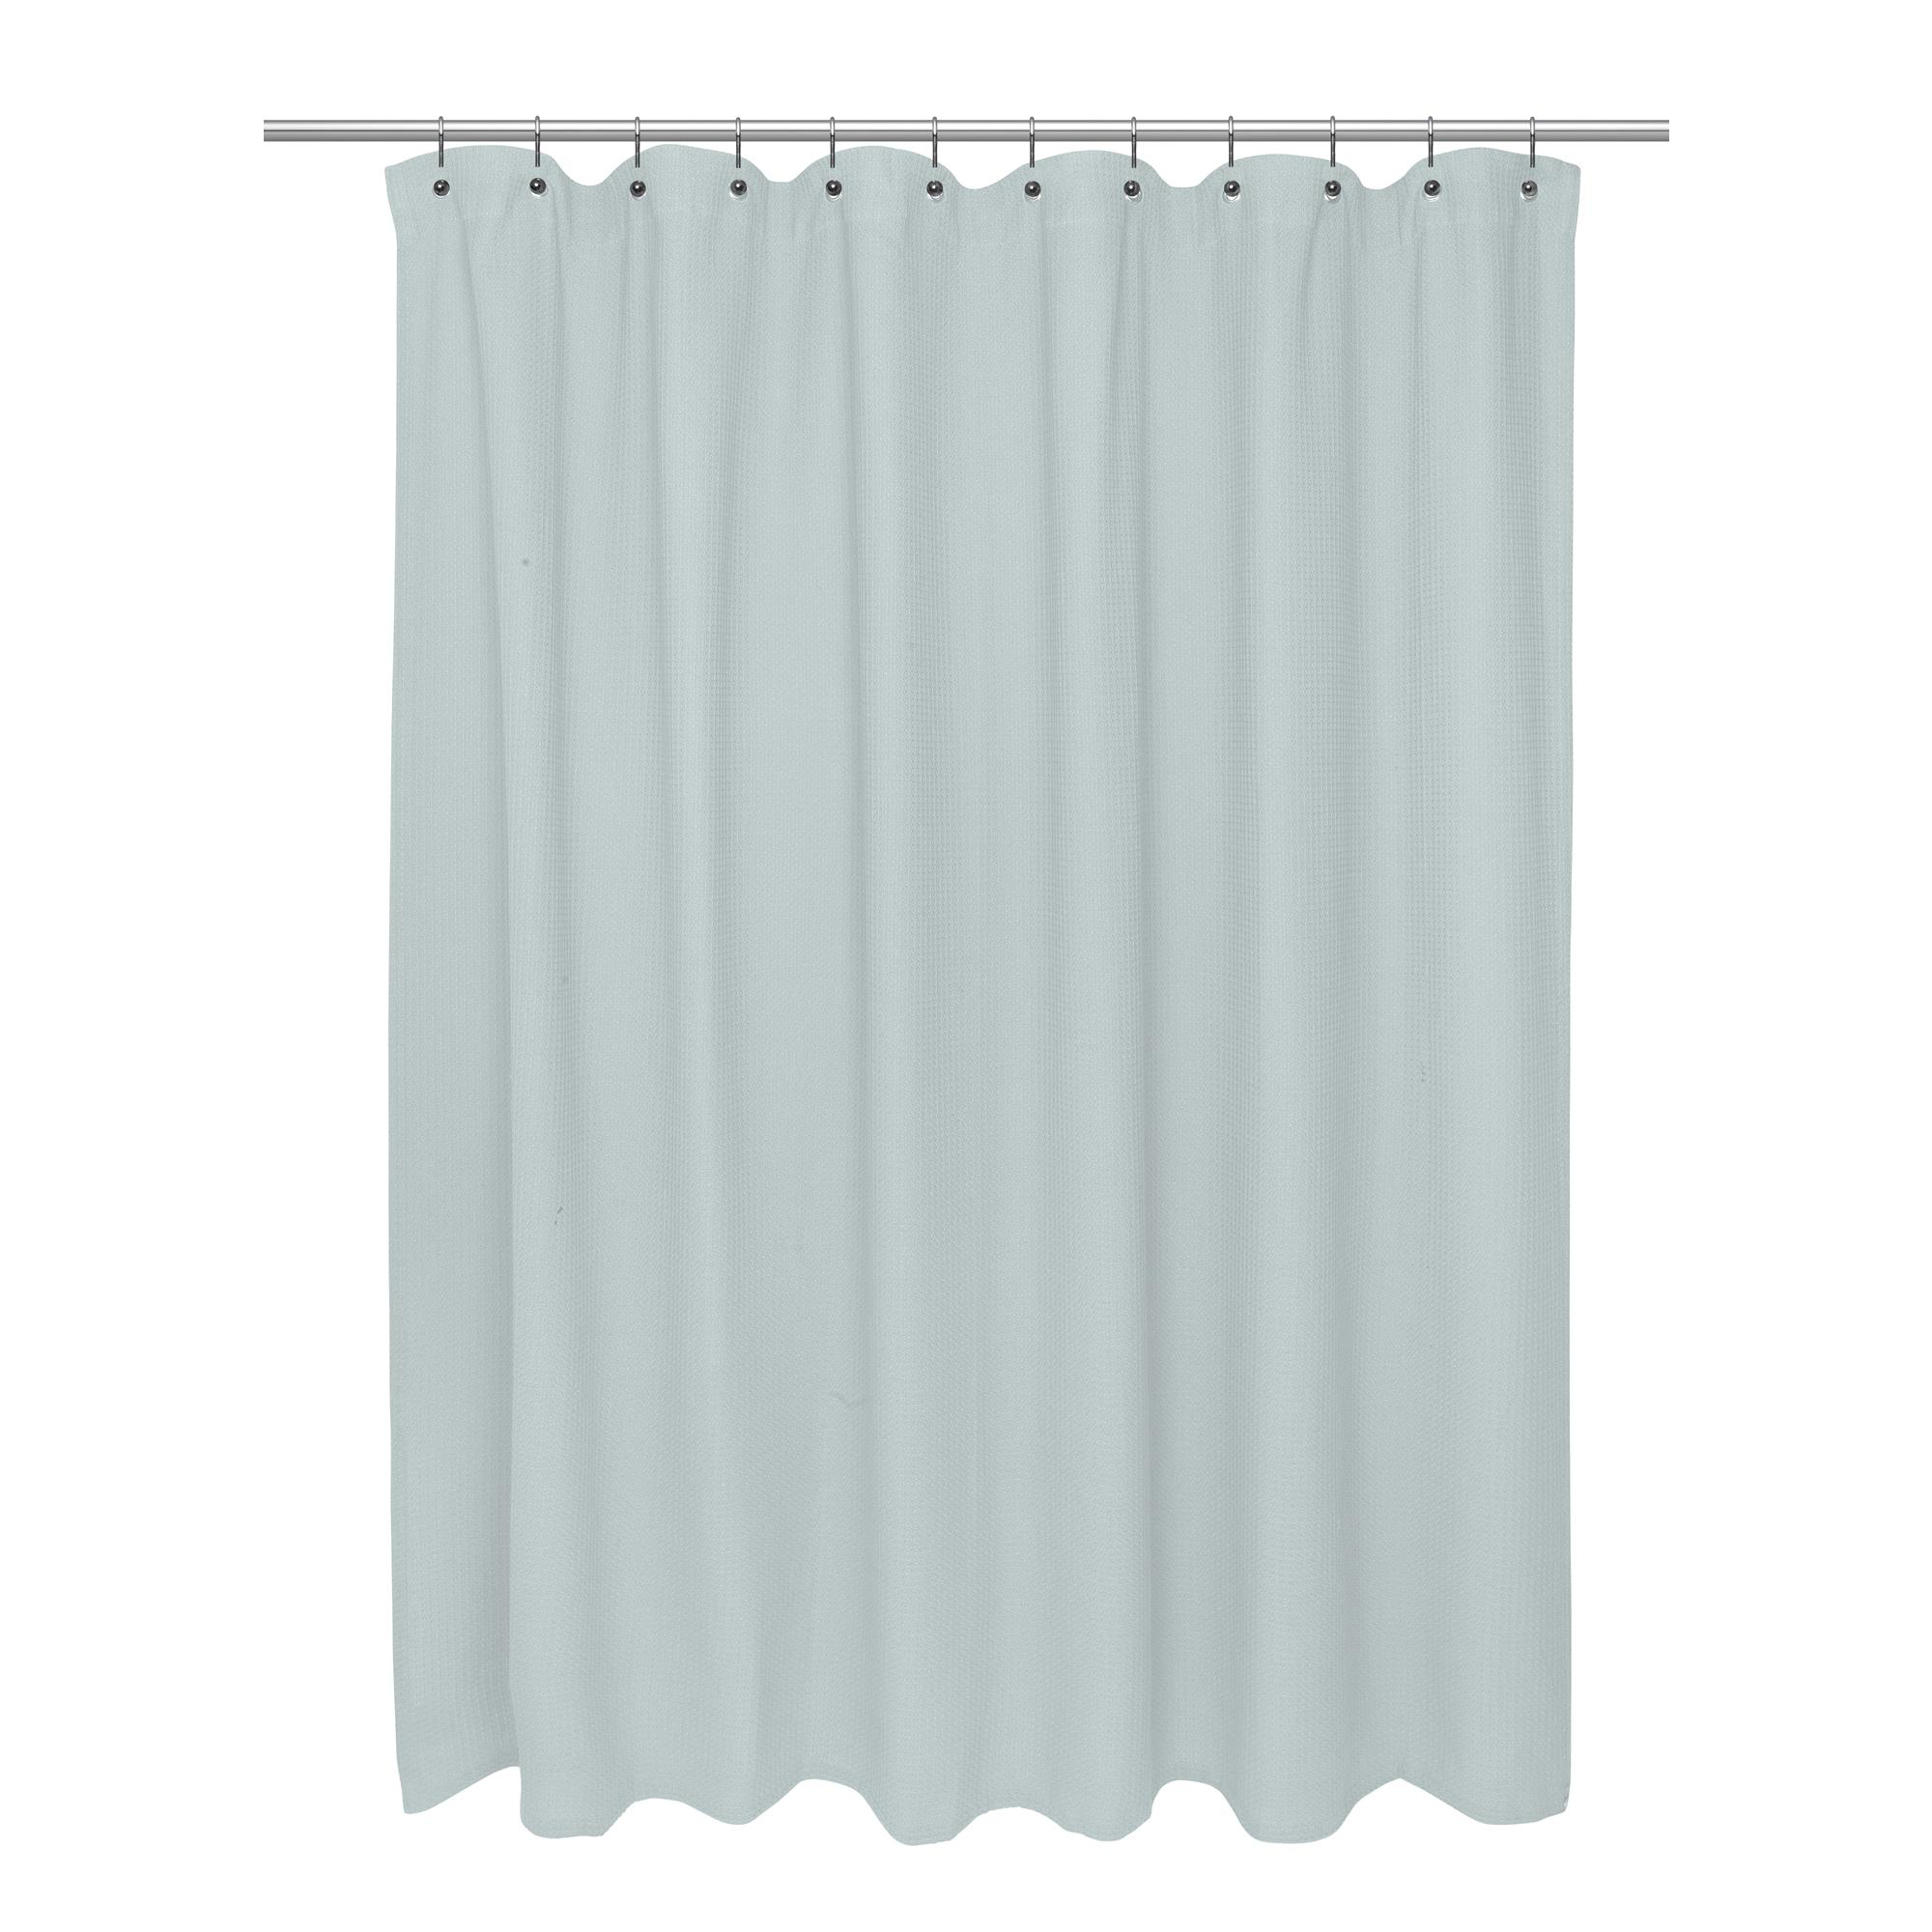 Details About Carnation Home Standard Size 100 Cotton Waffle Weave Shower Curtain Spa Blue